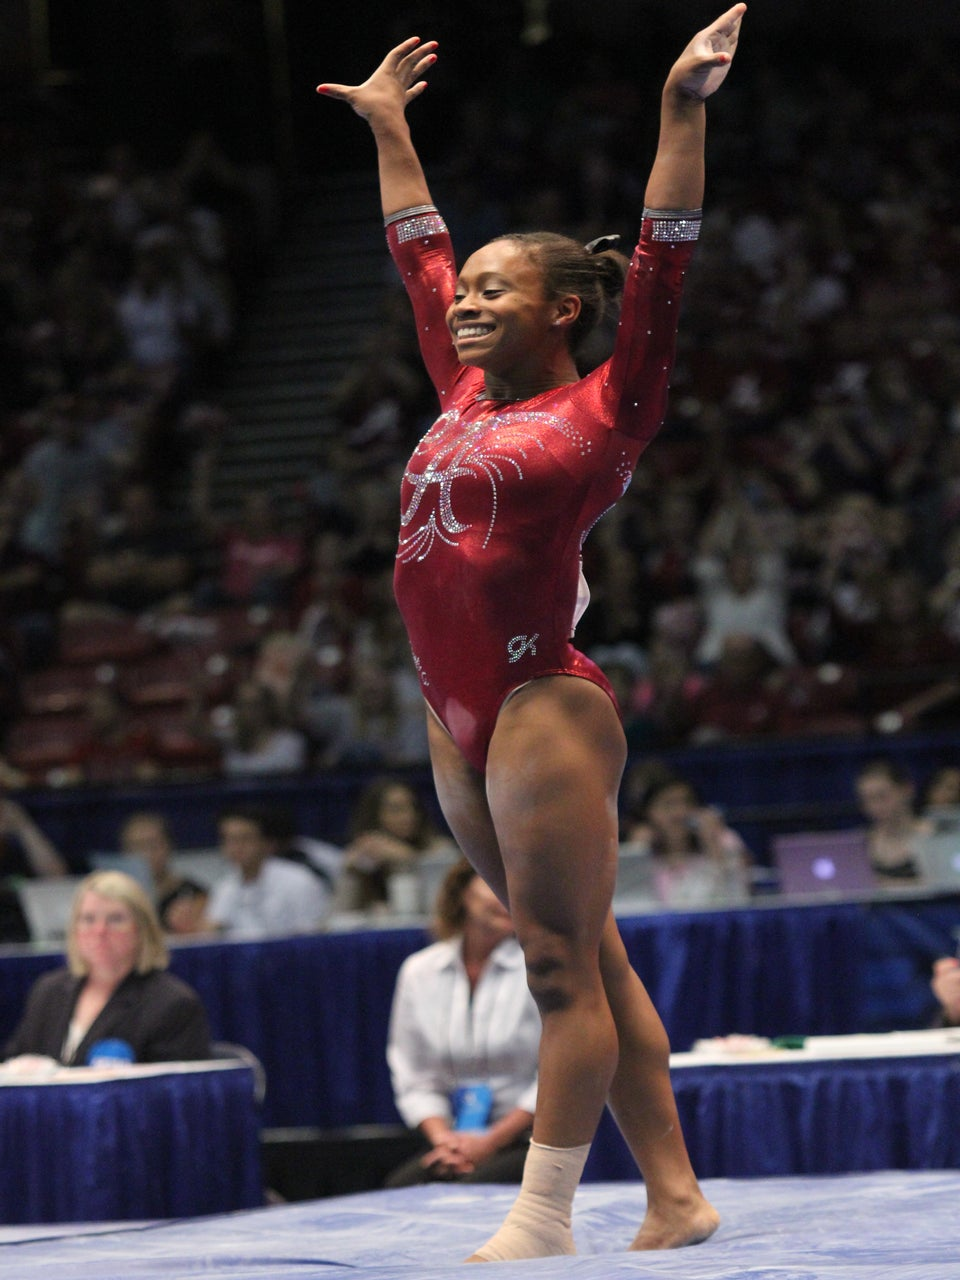 Watch This Gymnast Milly Rock Her Routine To A Near Perfect Score